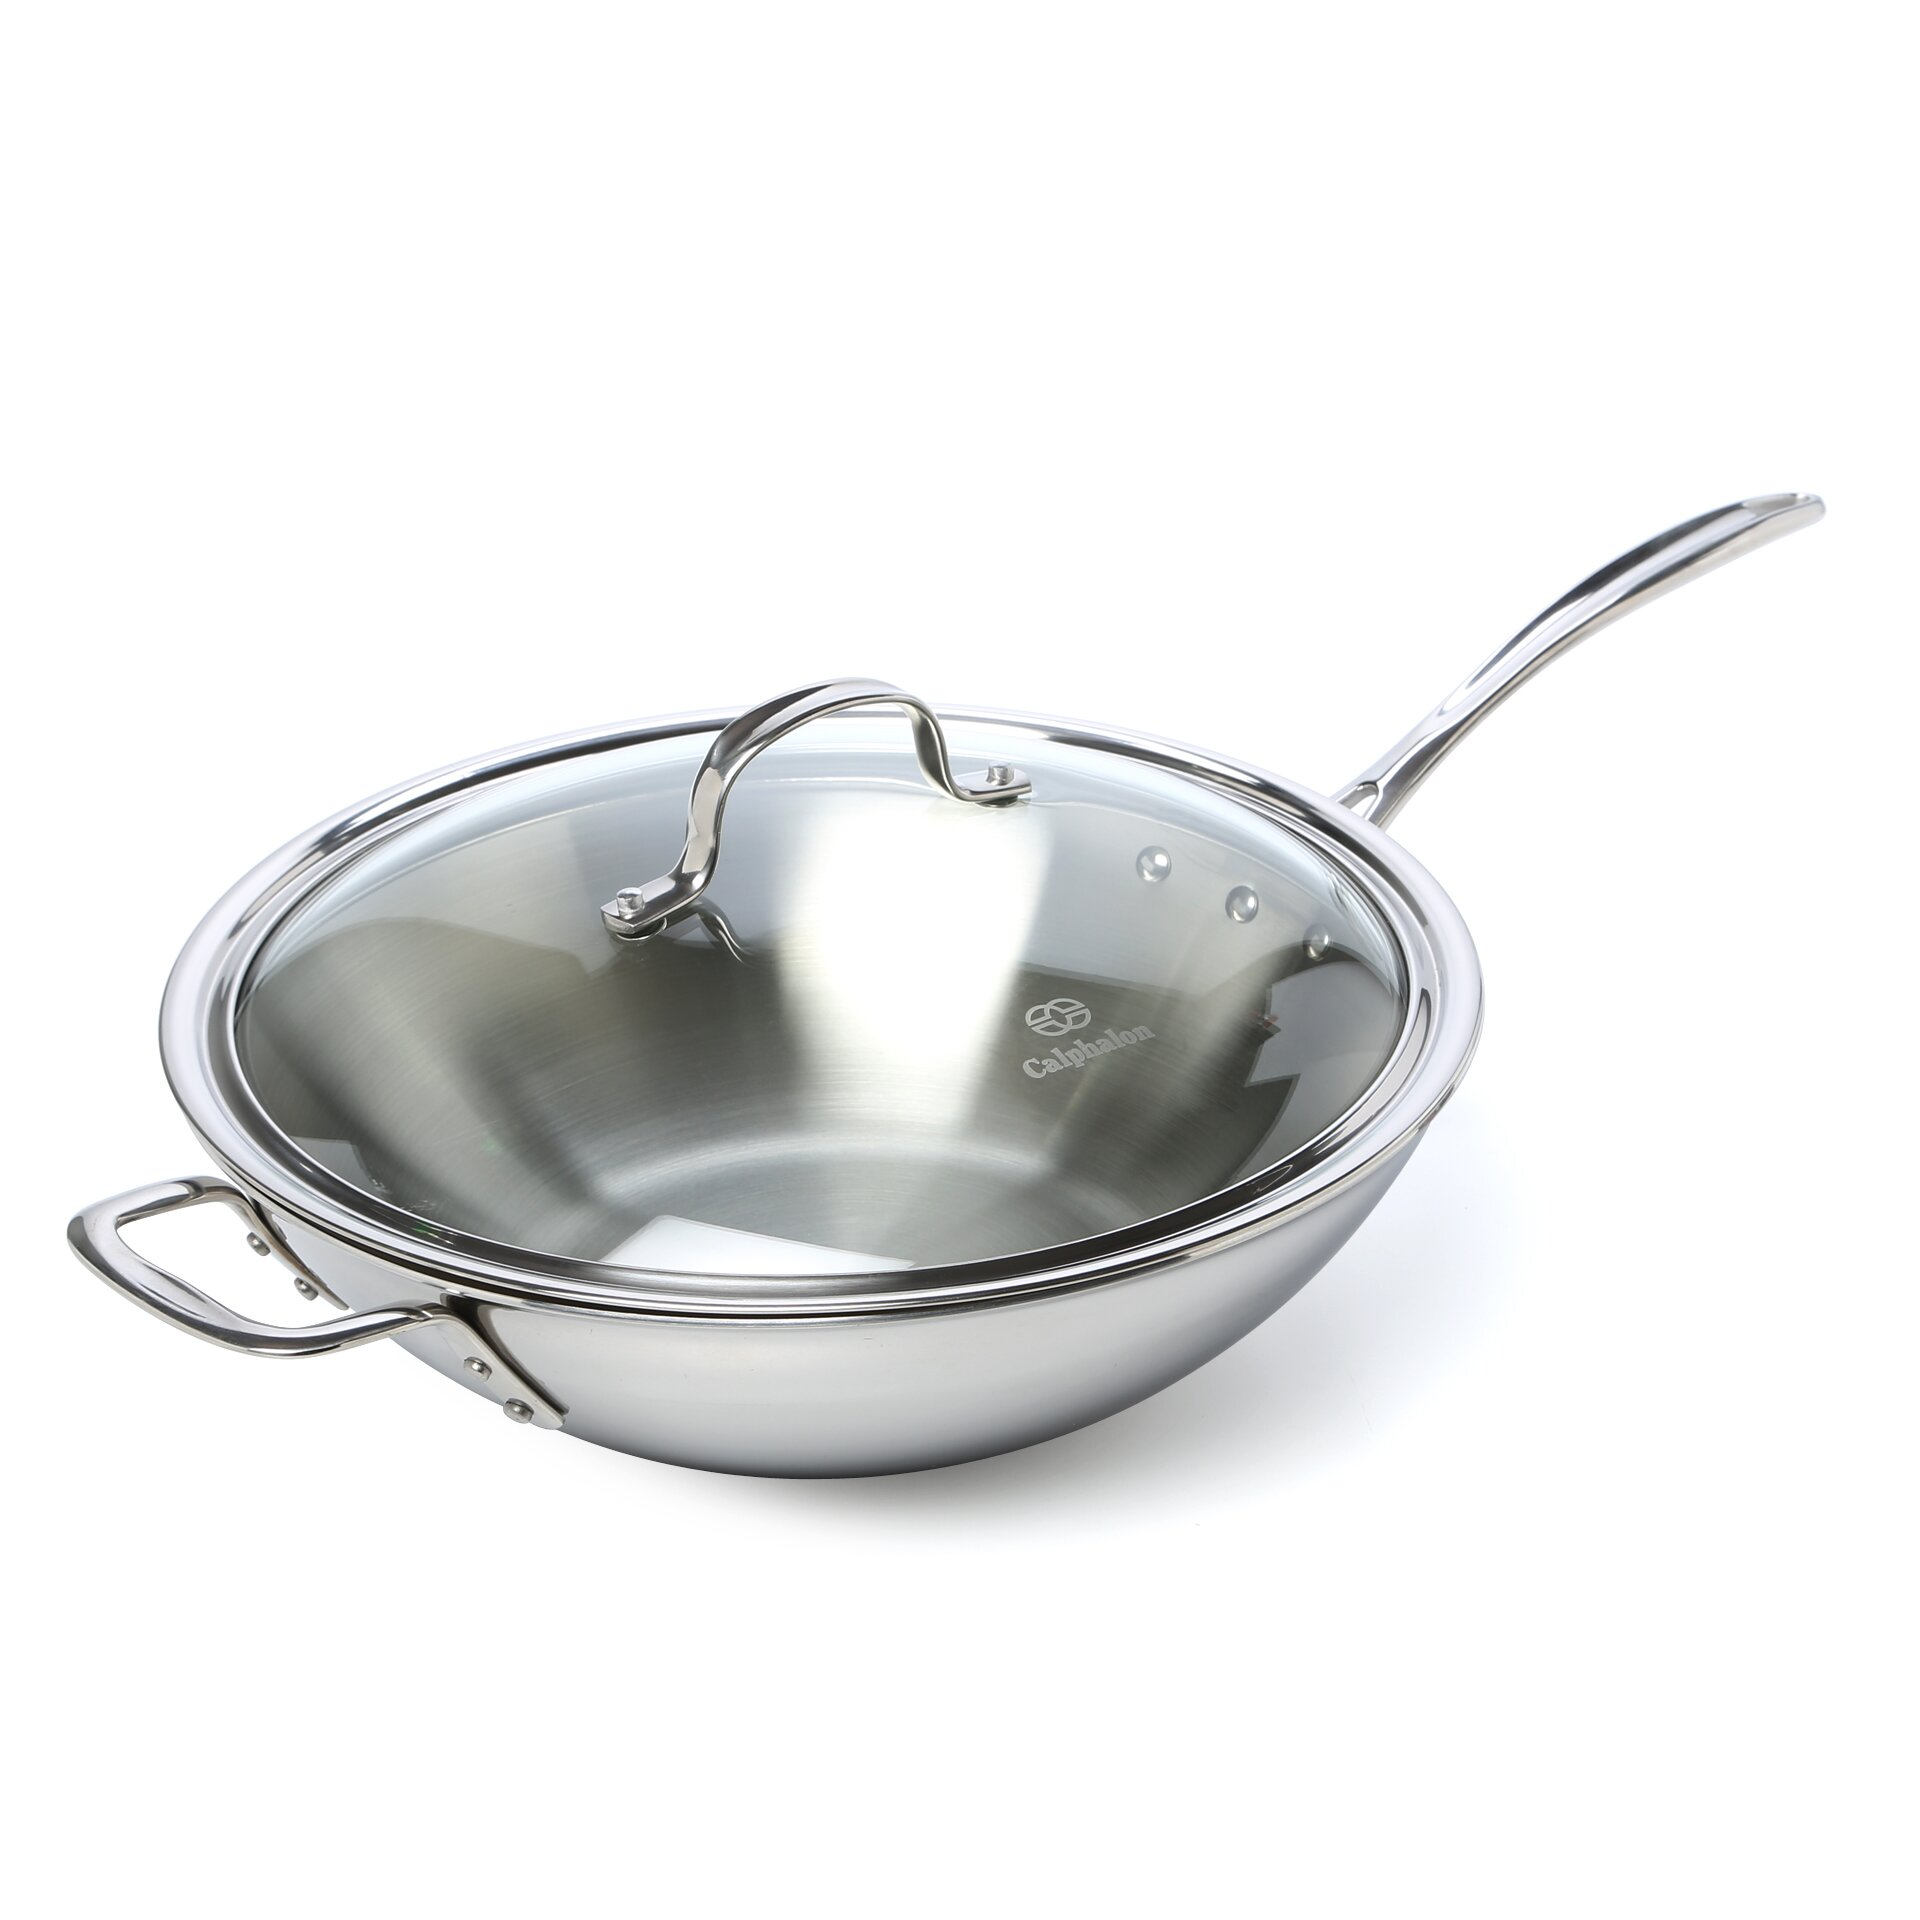 Calphalon Tri Ply Stainless Steel 12 Quot Frying Pan With Lid